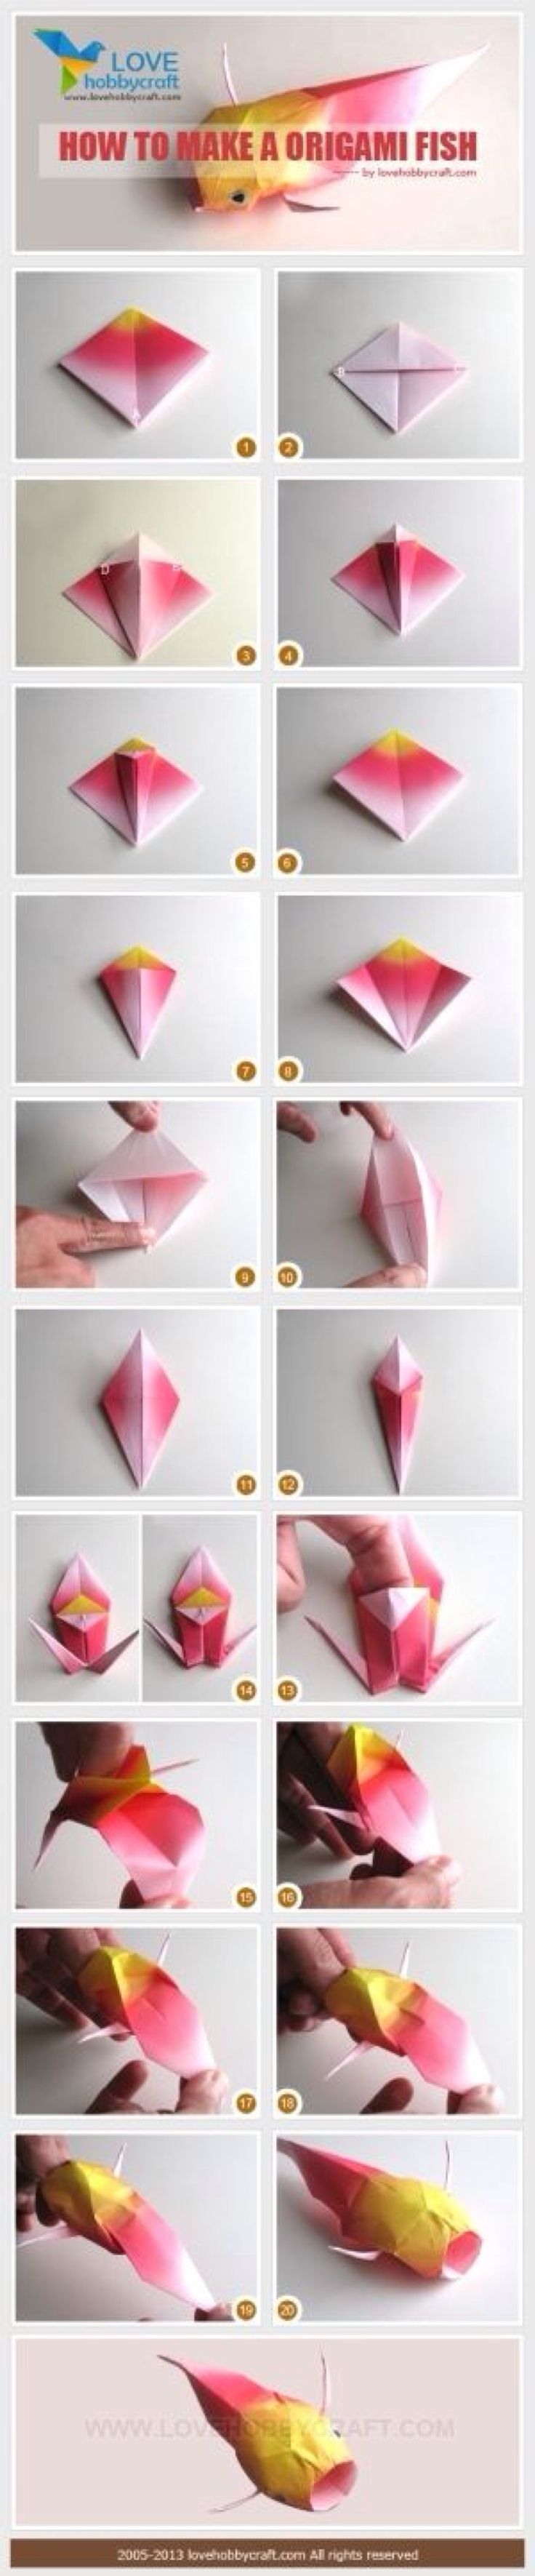 56 best images about origami on pinterest paper bows for Origami koi tutorial